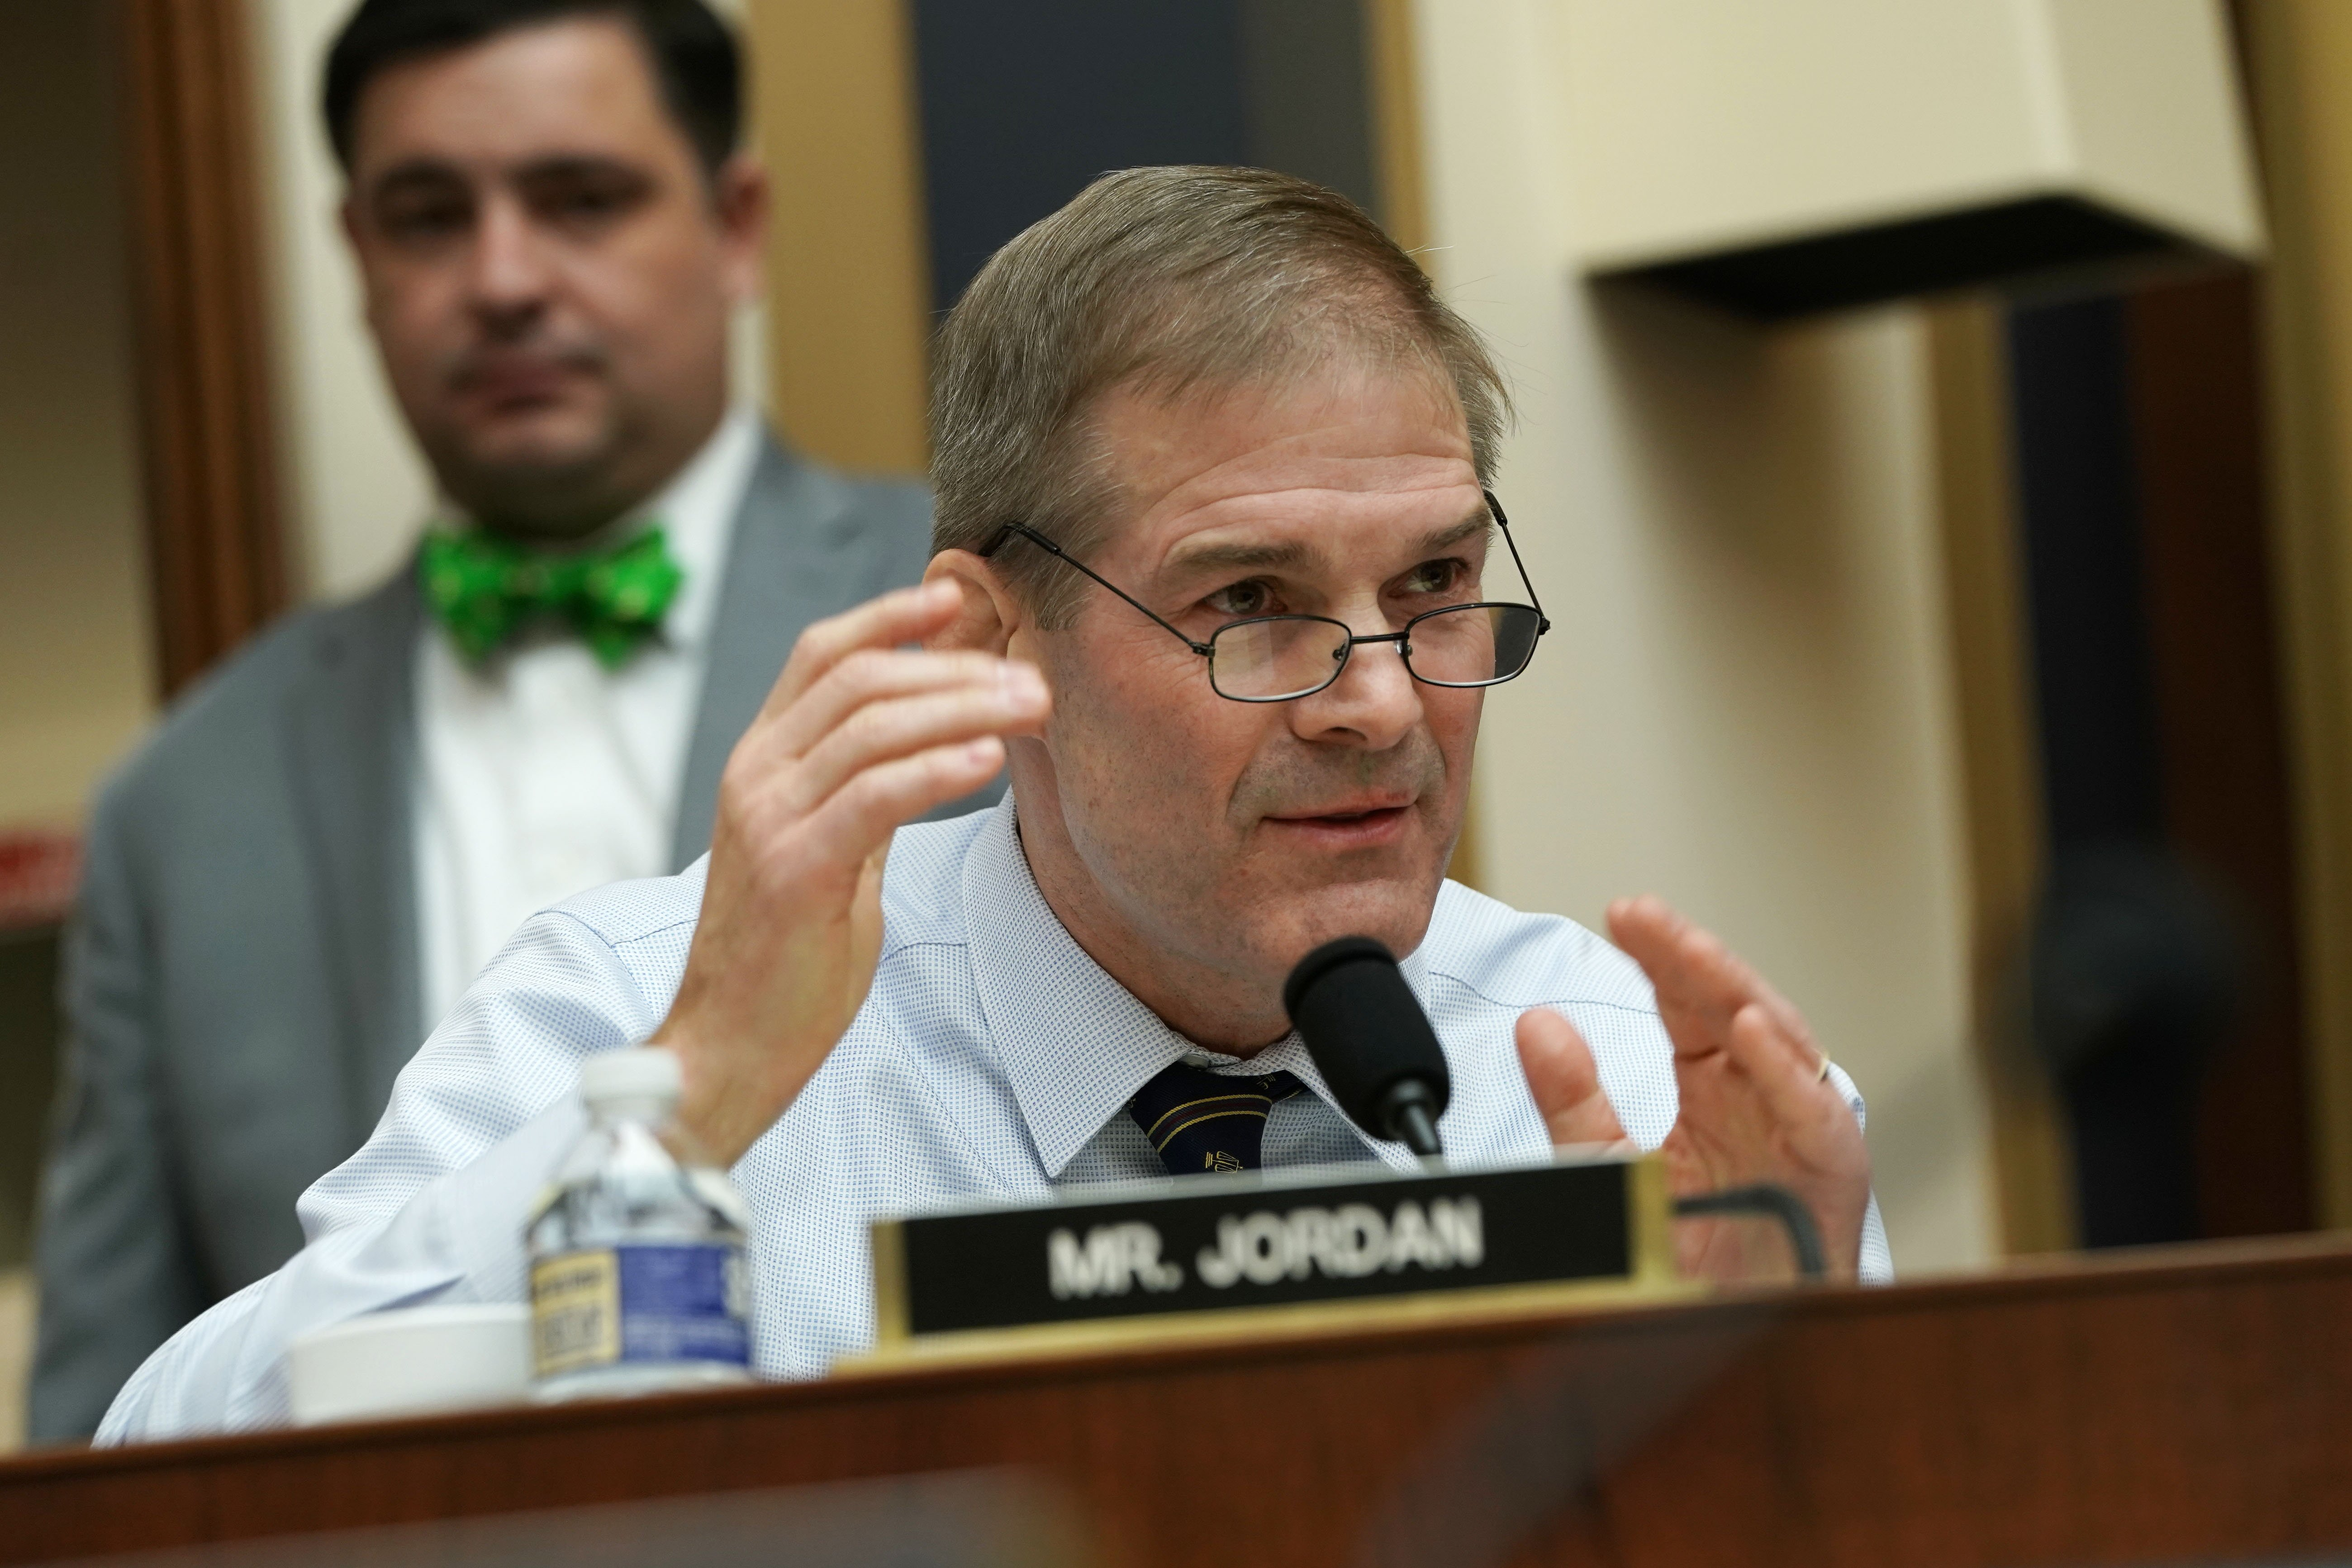 U.S. Rep. Jim Jordan speaks during a hearing where Google CEO Sundar Pichai testifies before the House Judiciary Committee at the Rayburn House Office Building on December 11, 2018 in Washington, DC. (Photo by Alex Wong/Getty Images)